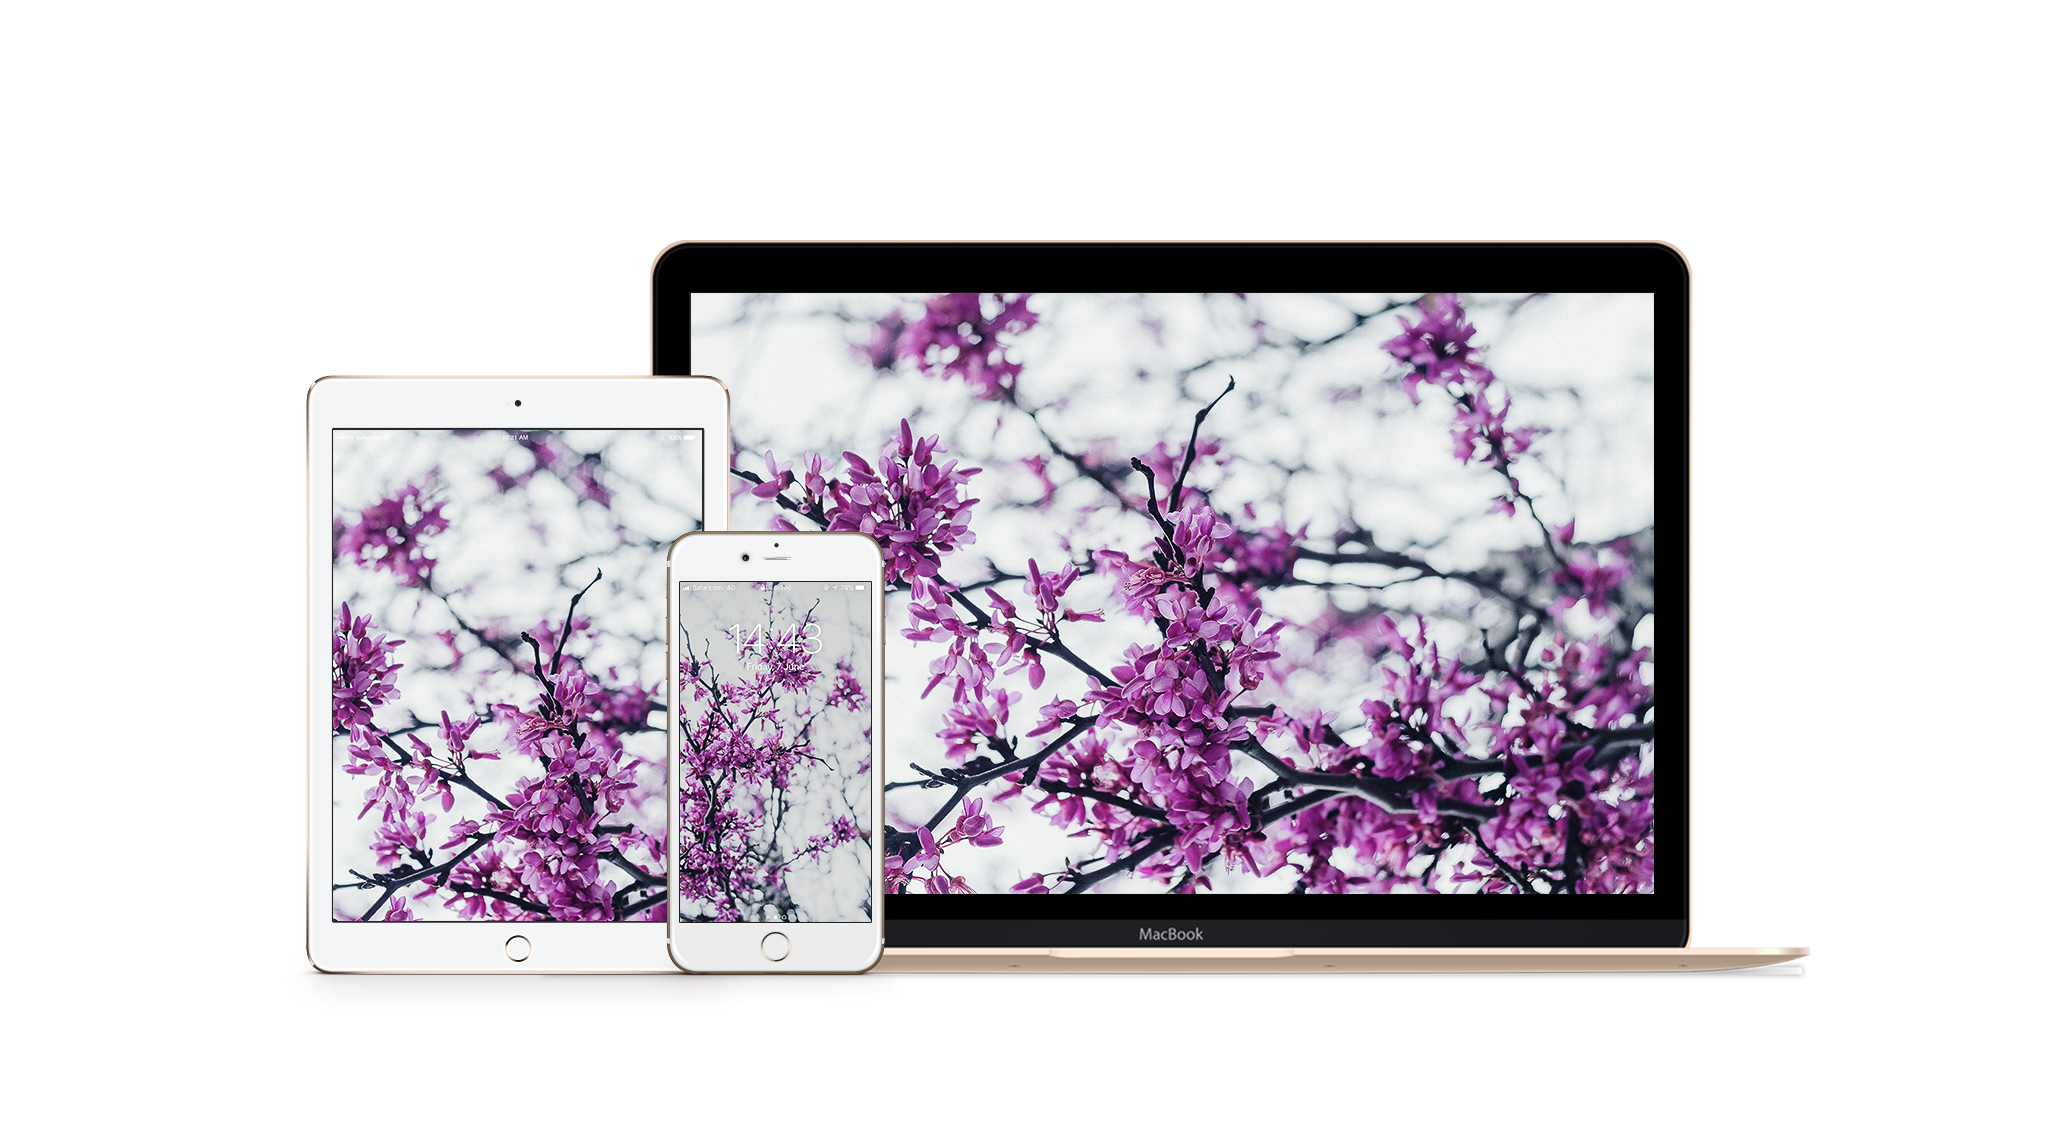 388_Floral [by @OsseGrecaSinare]_Wallpaper_APPLE.jpg